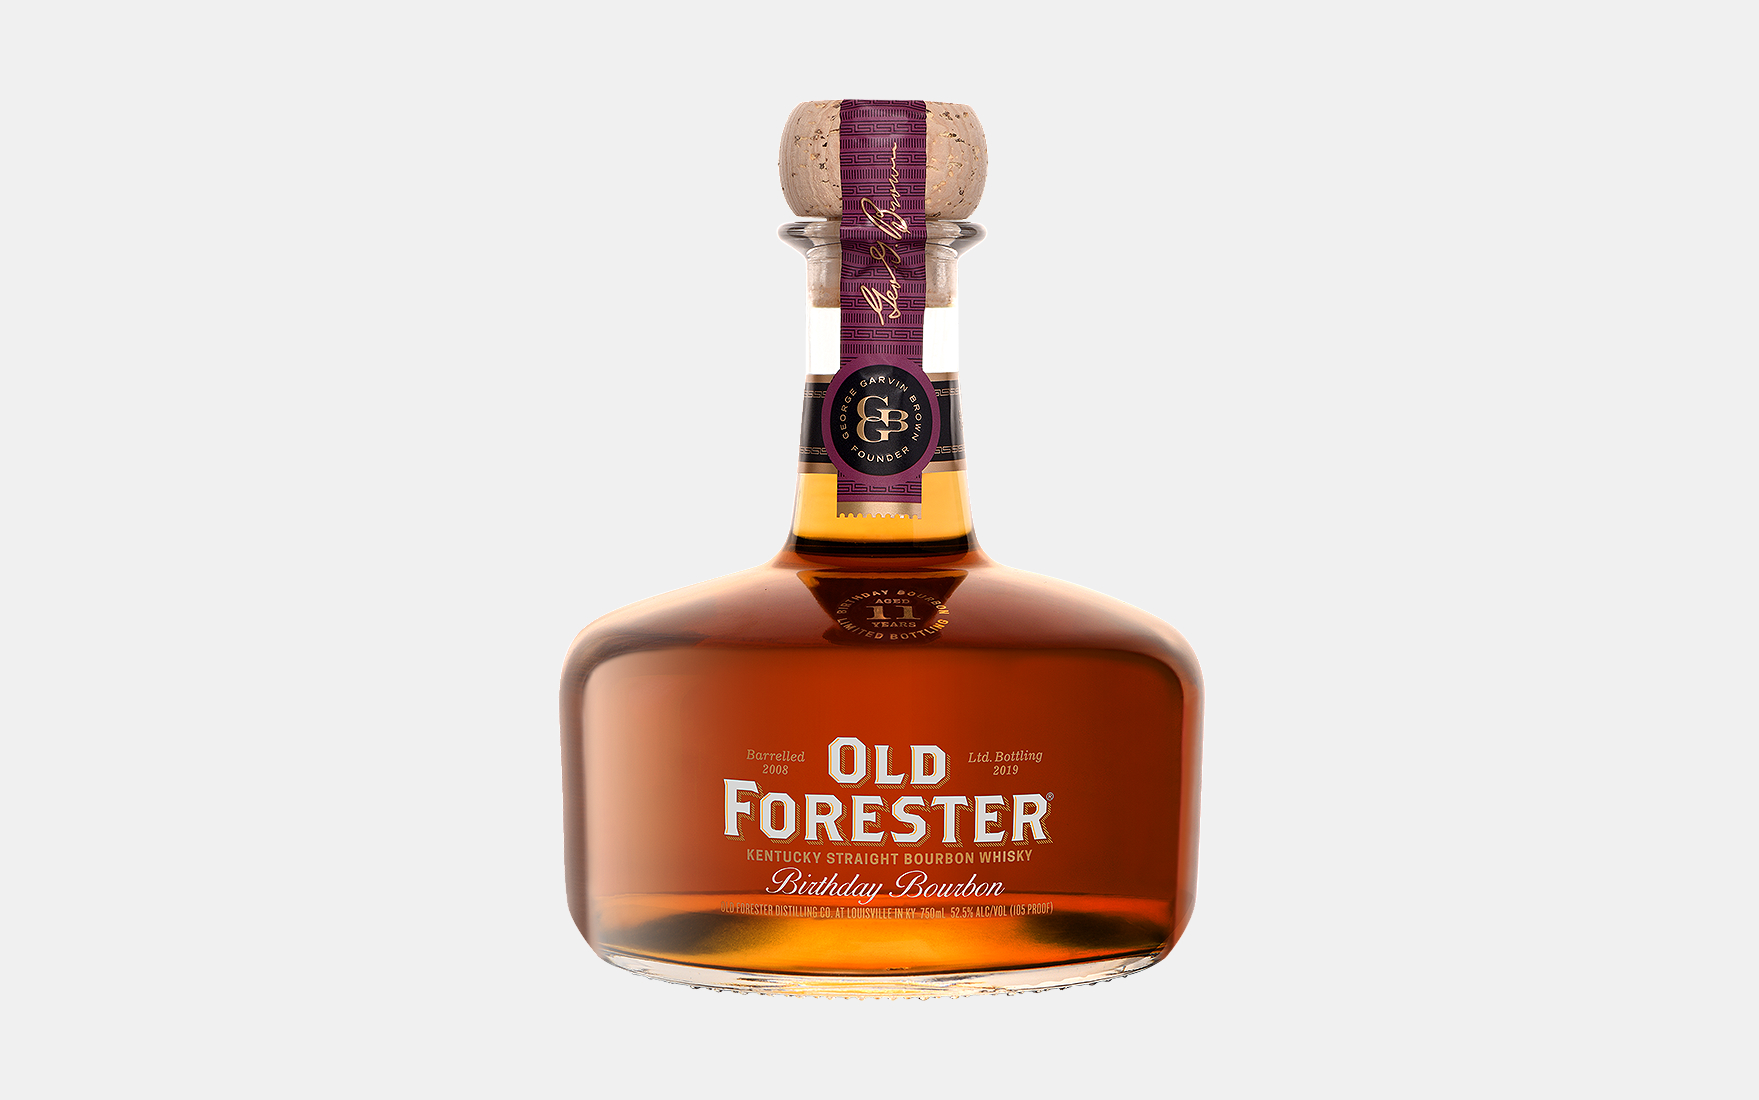 Old Forester 2019 Birthday Bourbon